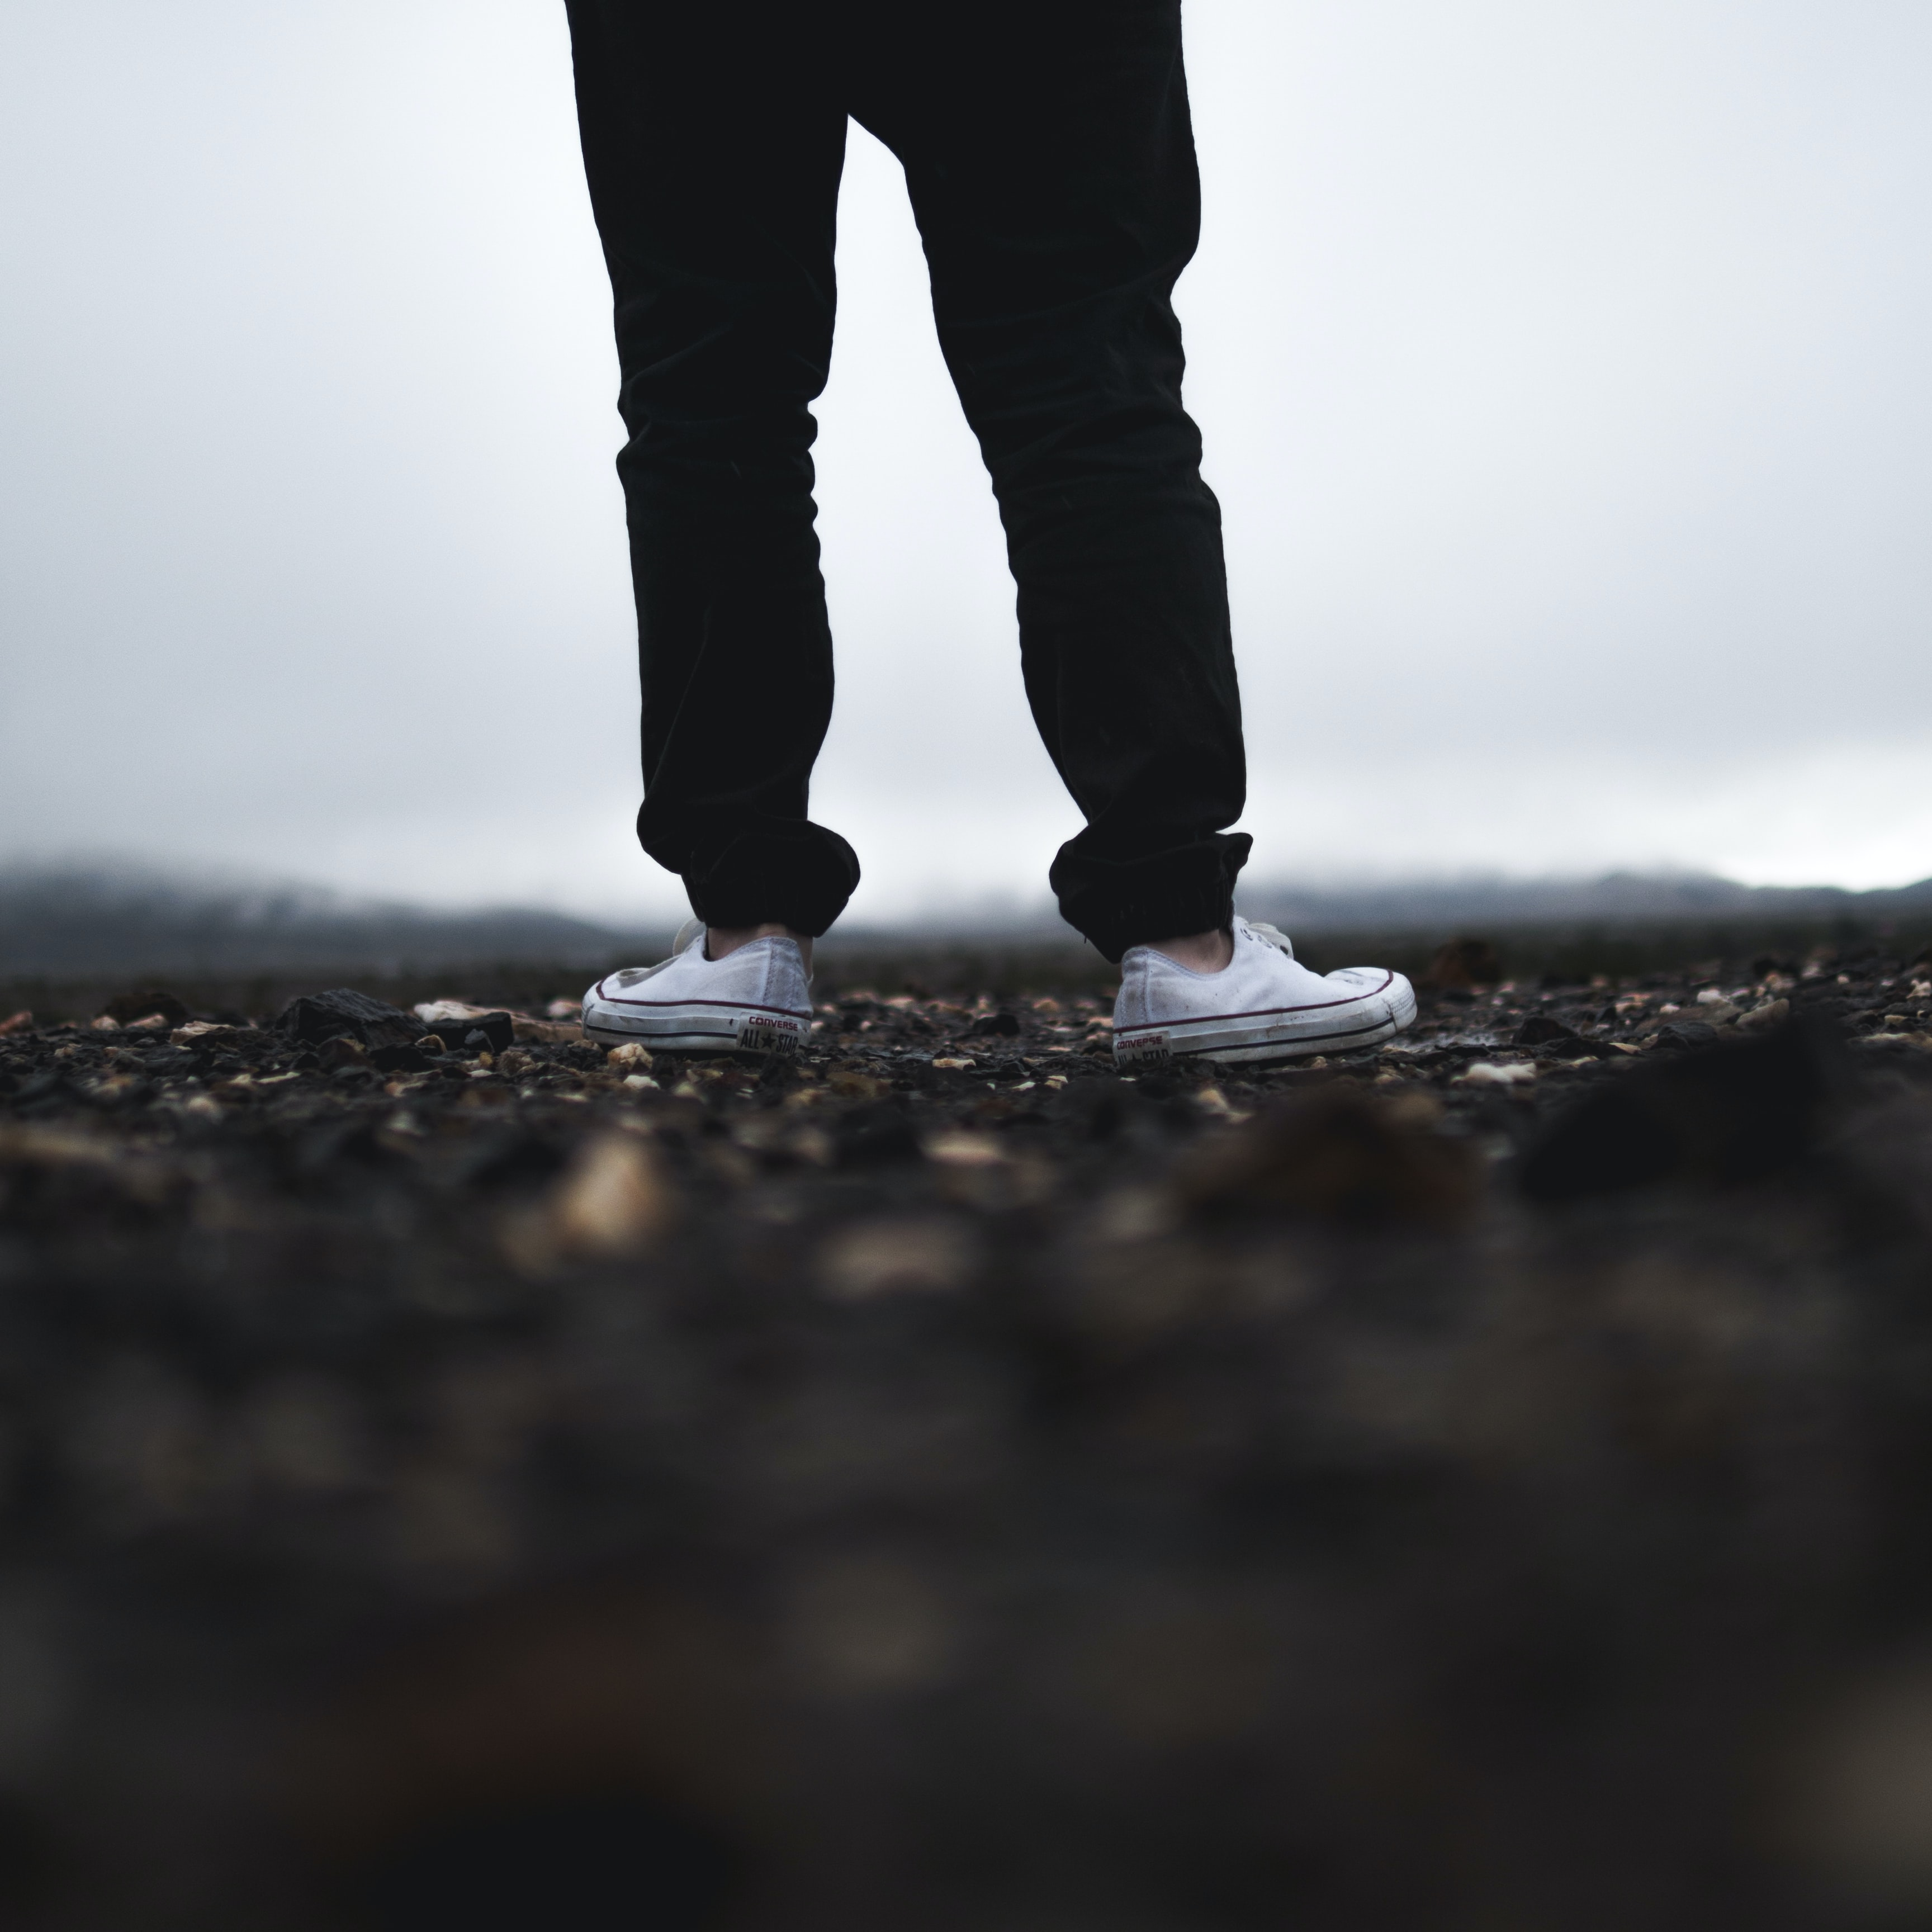 Low shot of person in converse sneakers standing on rocky ground